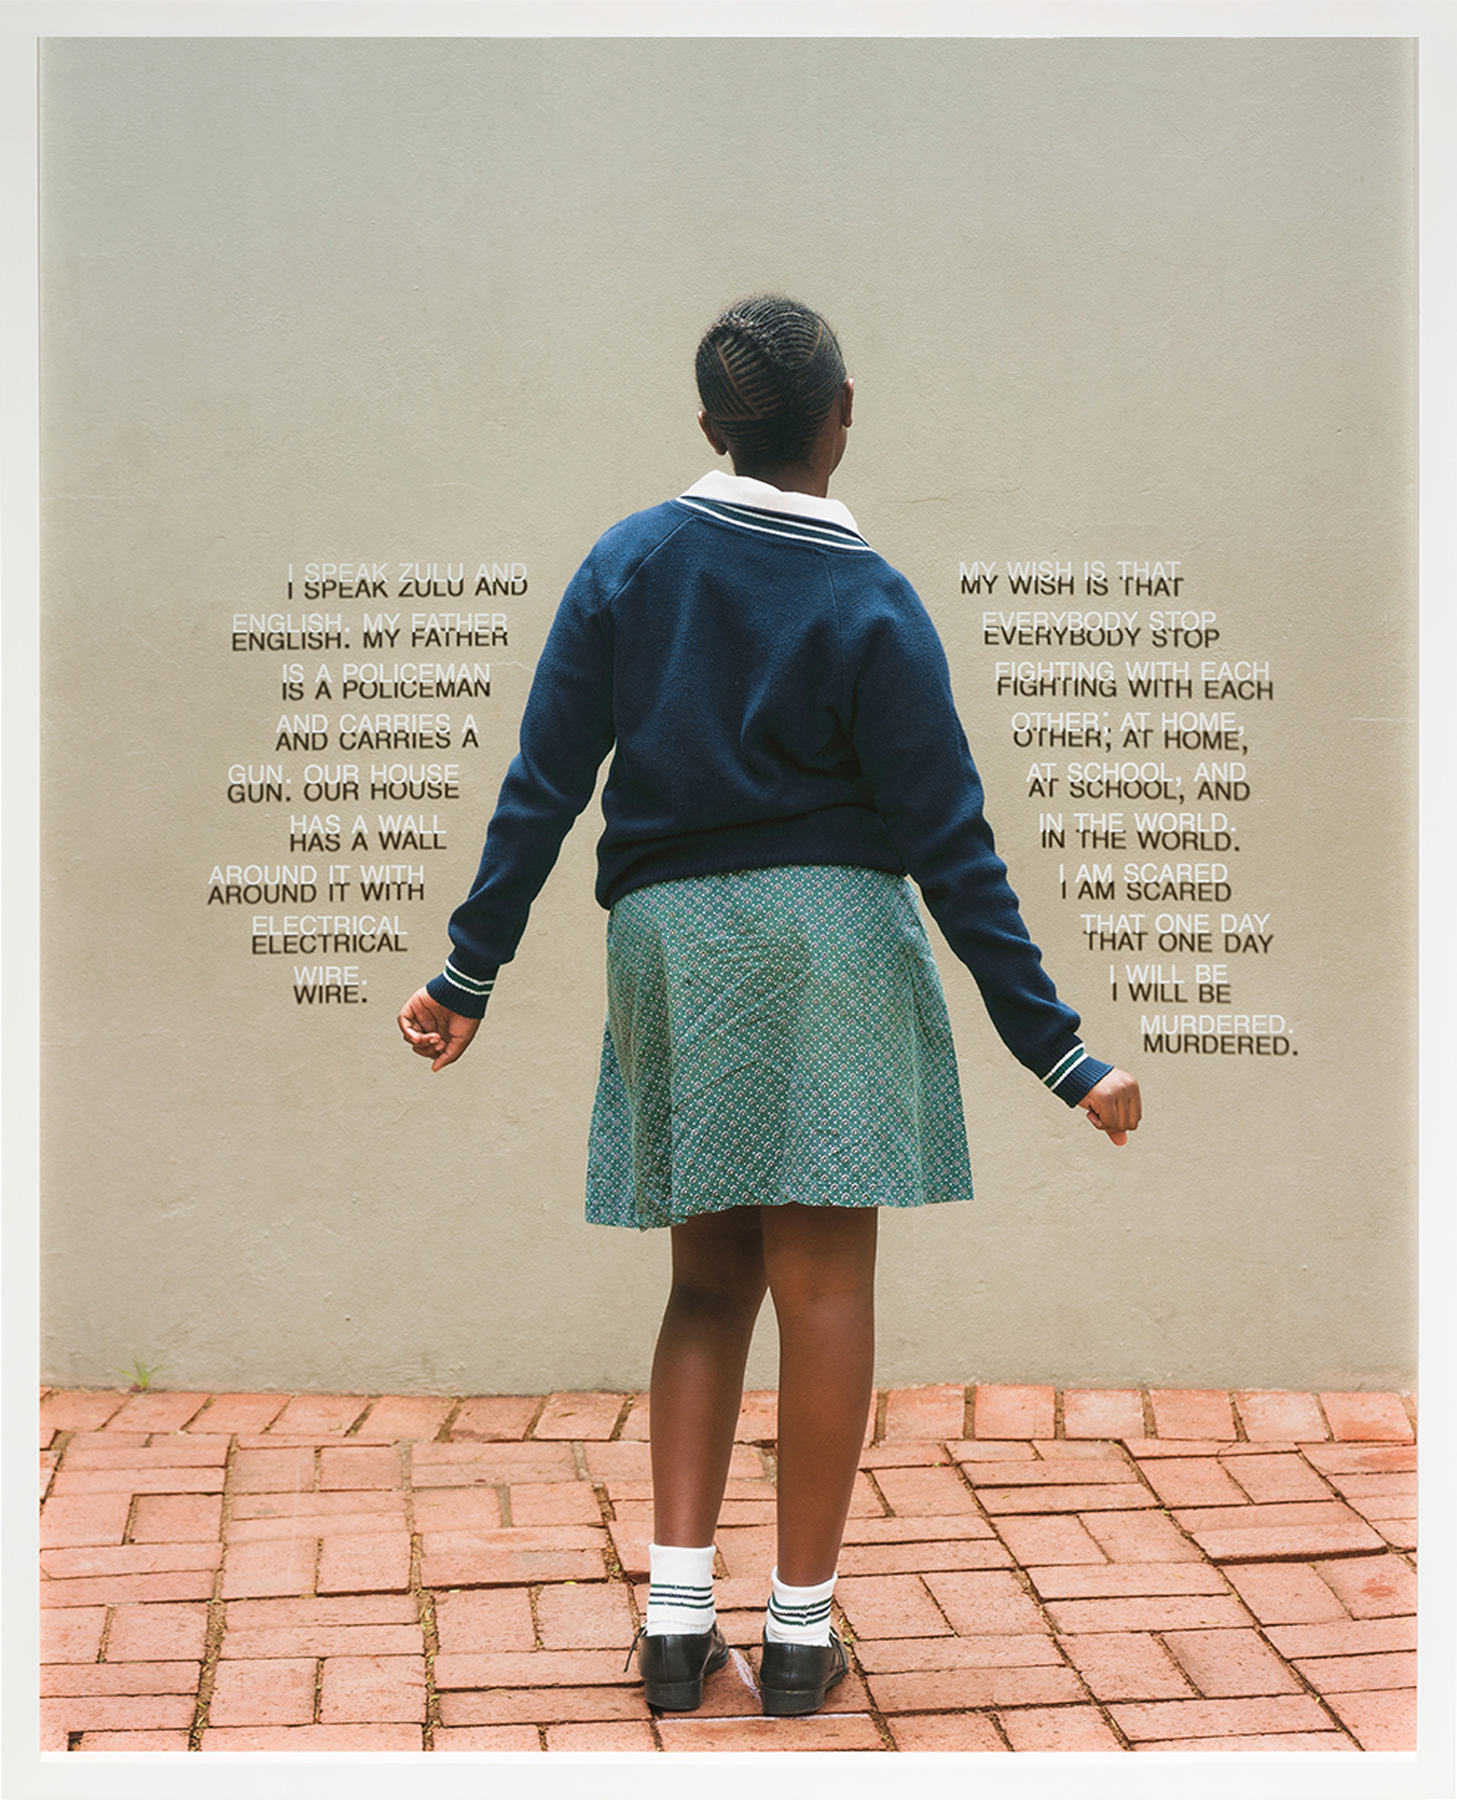 Fourth Grade - Be Murdered (South Africa: Public School), 31.25 x 25 inches / 79.4 x 63.5 cm, framed shadow box, archival pigment print - text printed on plexi-glass, edition 1/7, 2018